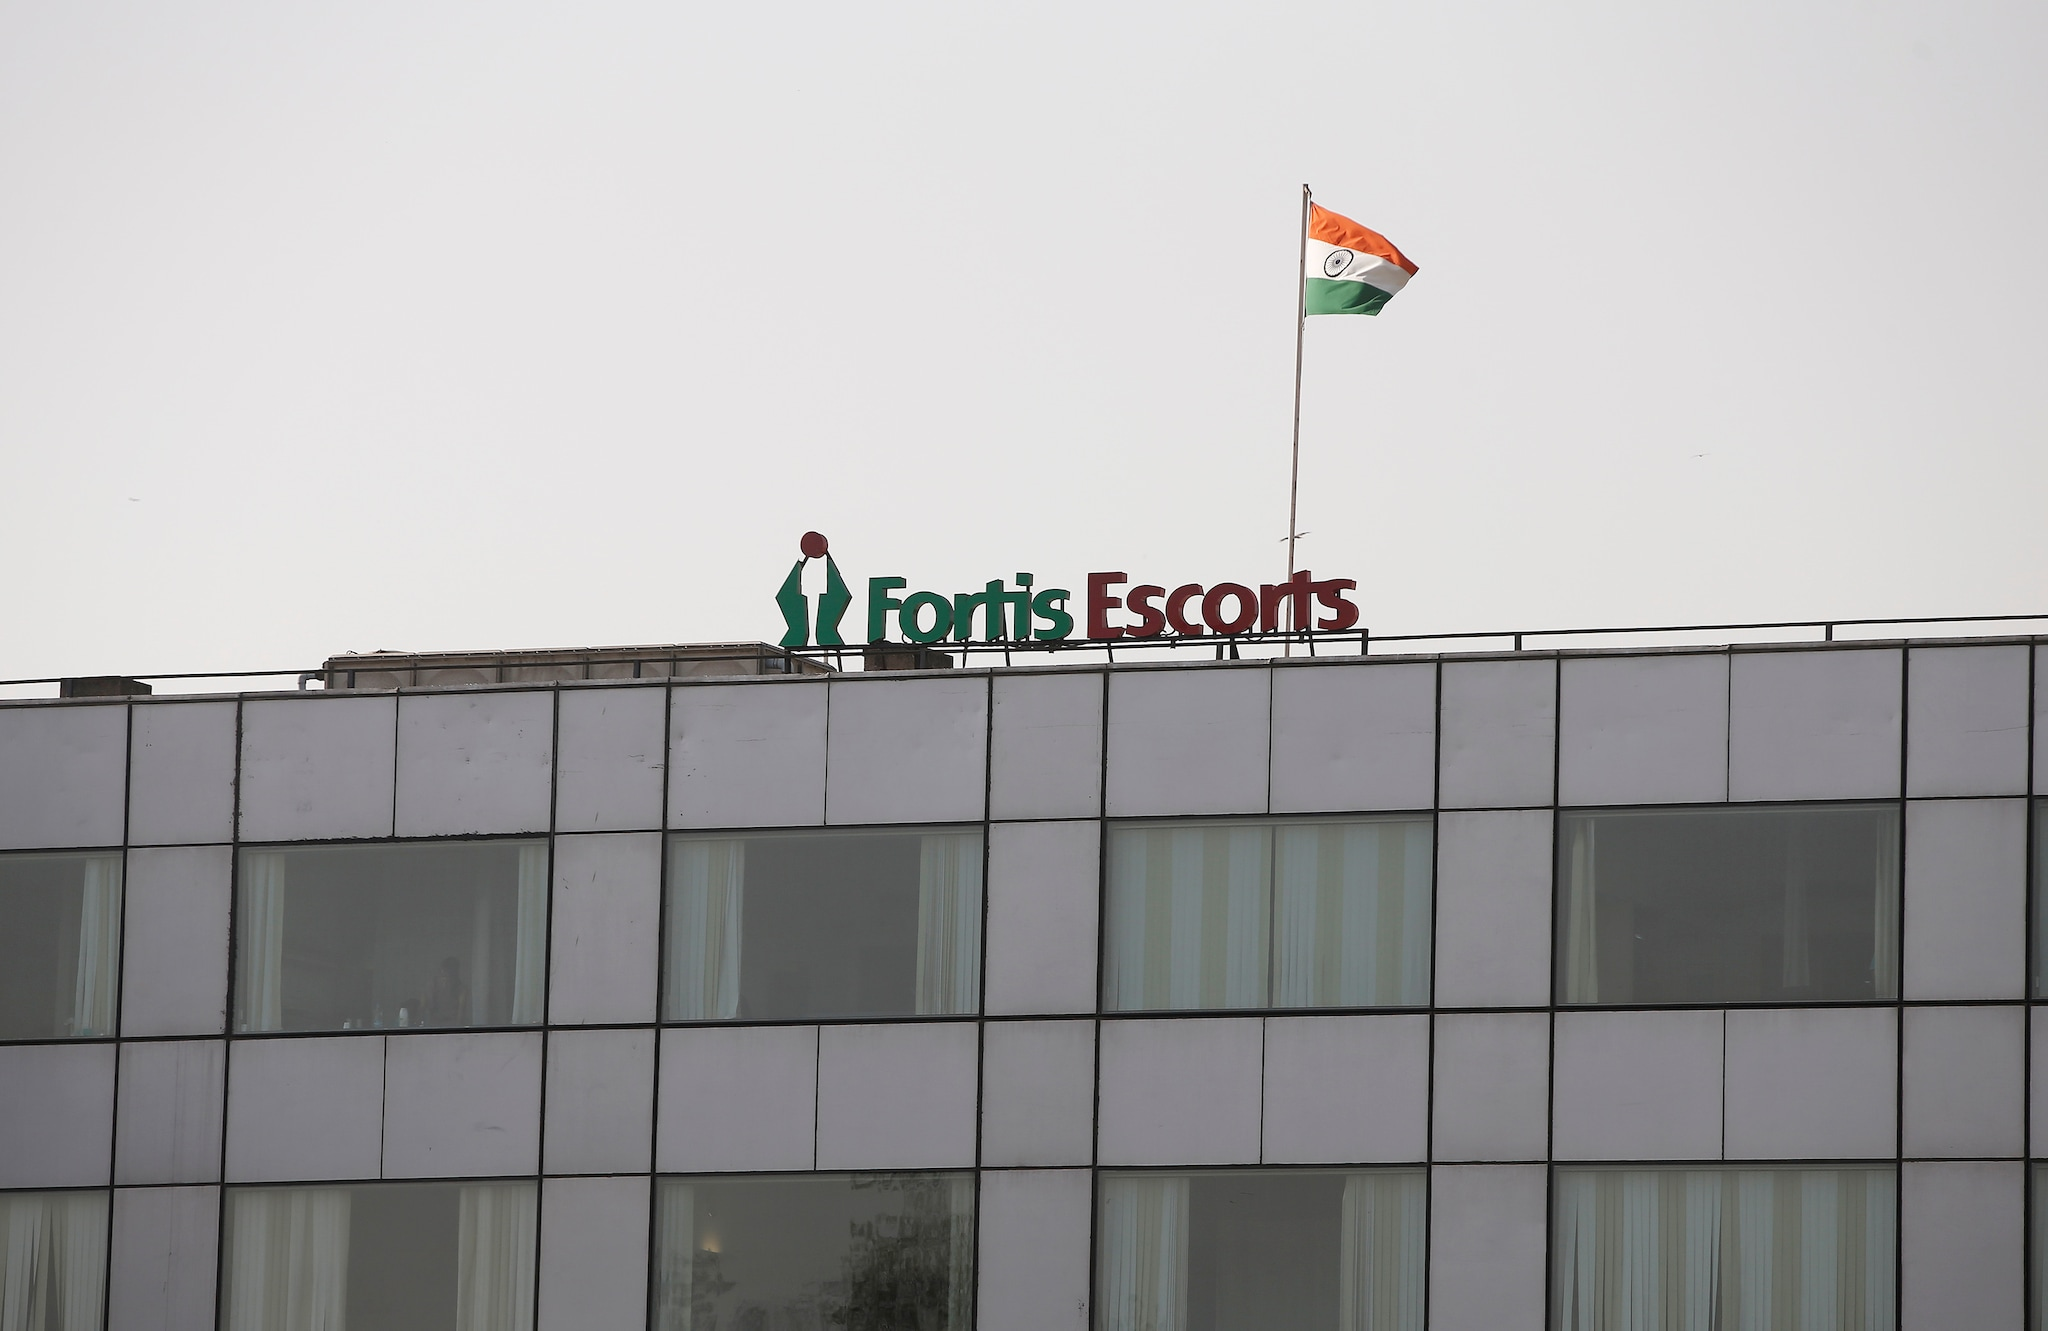 <strong>Fortis Healthcare:</strong> The company reported a consolidated net profit of Rs 151.19 crore for the quarter ended March, as against a net loss of Rs 914.32 crore in the corresponding period of the previous fiscal. Consolidated revenue from operations increased to Rs 1,184.15 crore from Rs 1,086.38 crore in the same quarter a year ago.